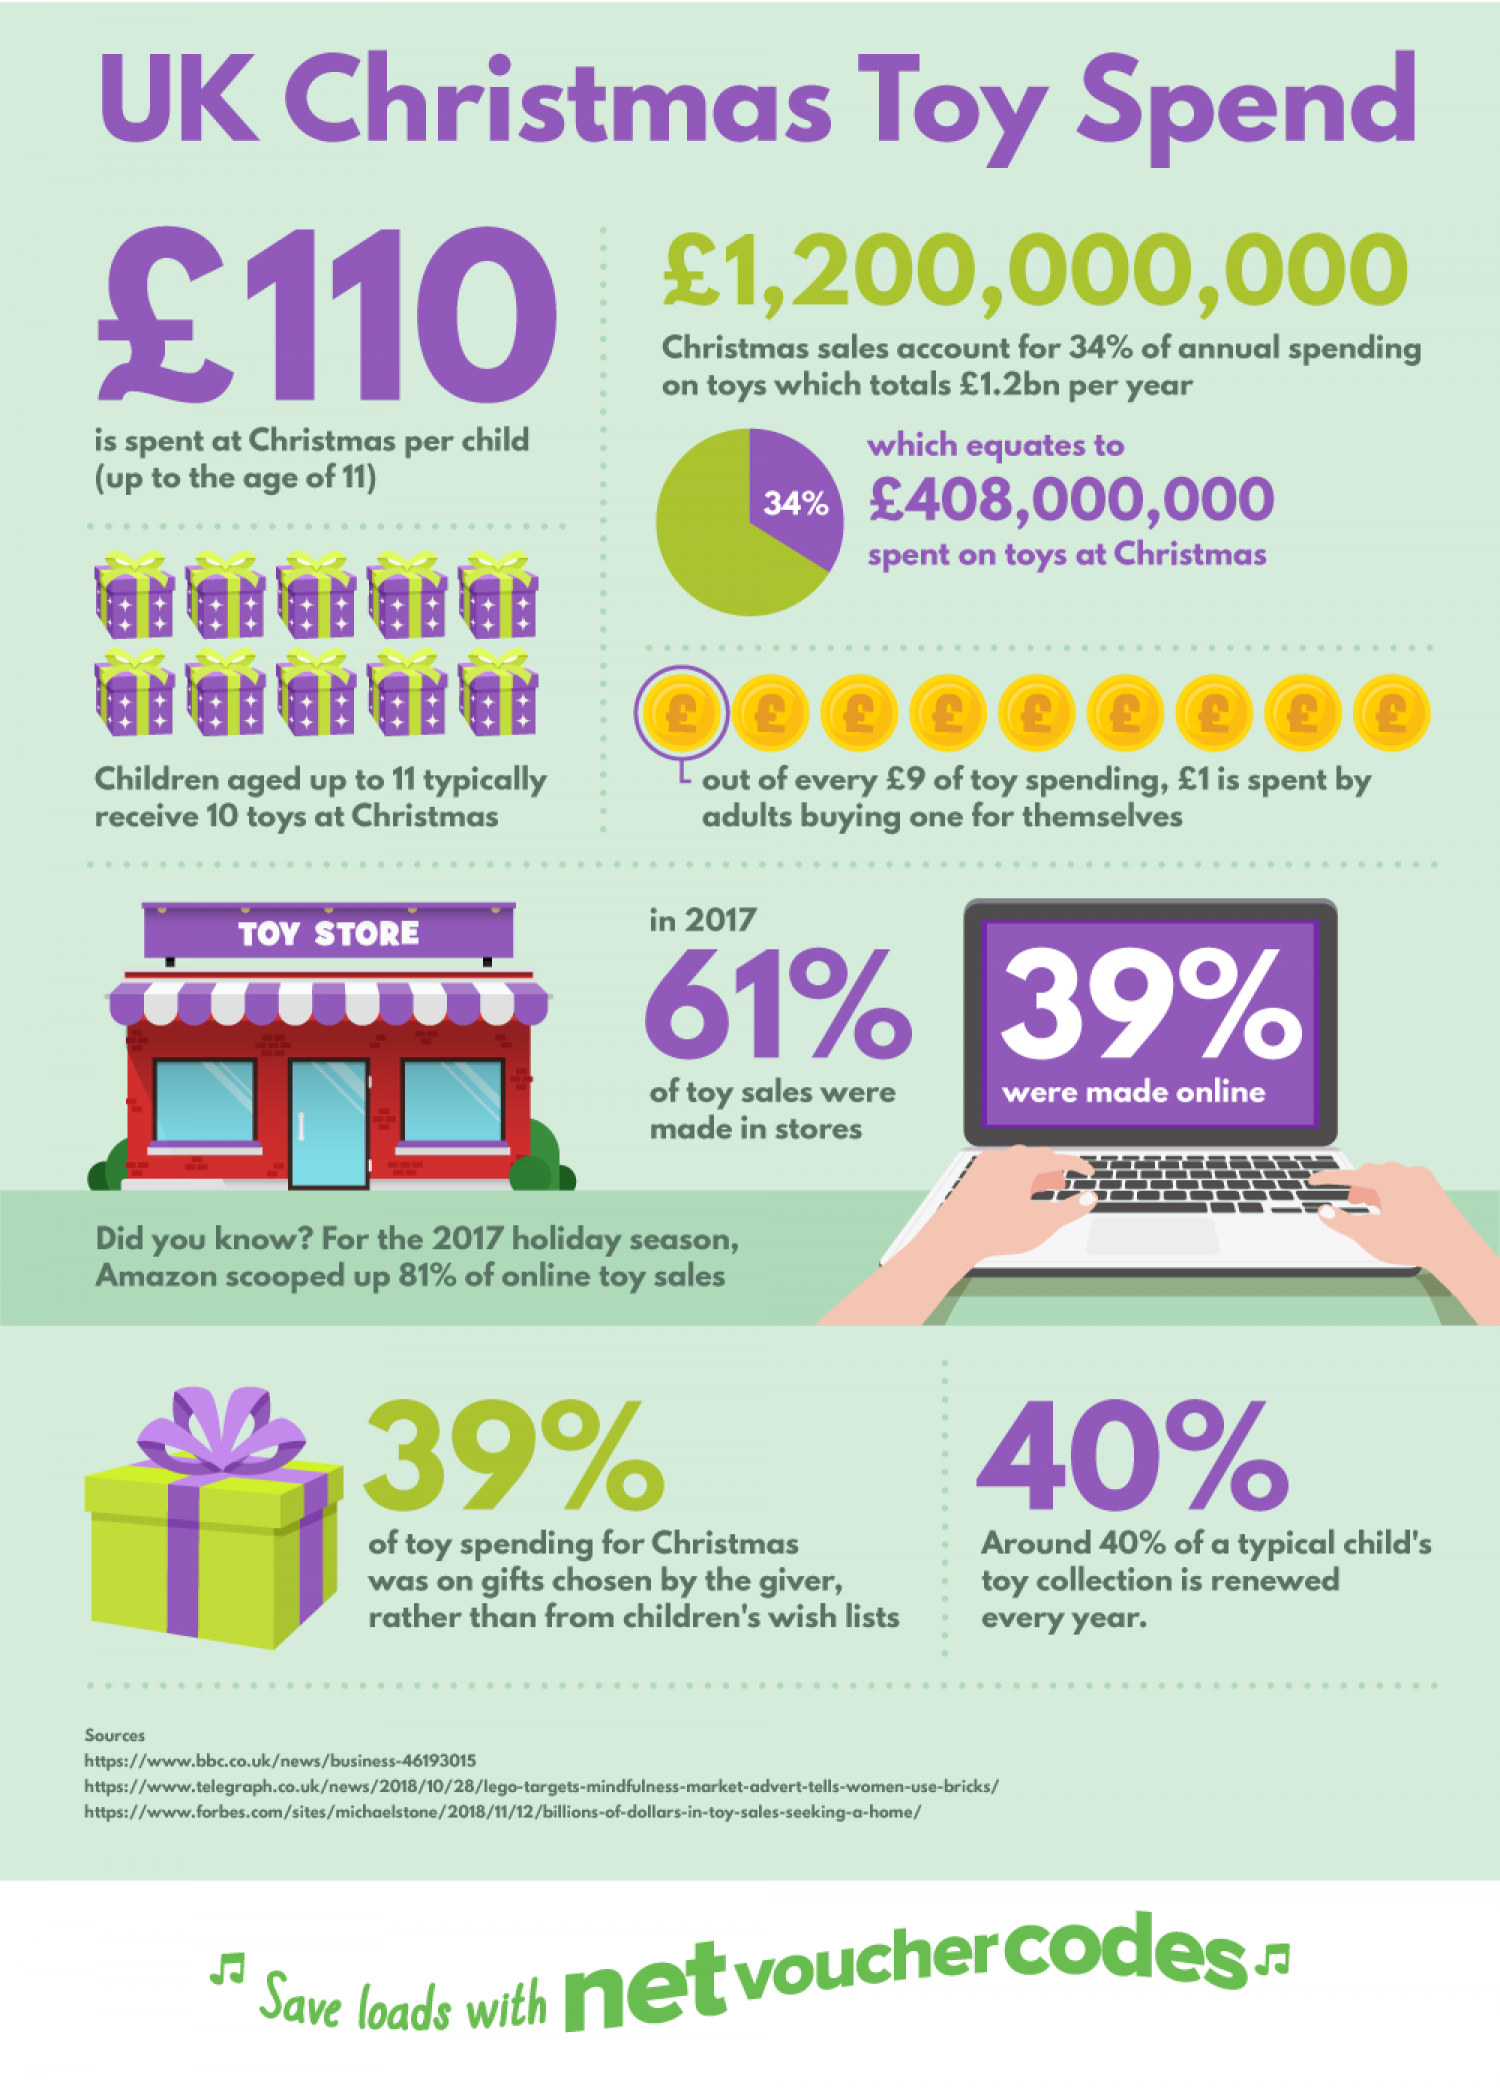 UK Christmas Toy Spend Infographic